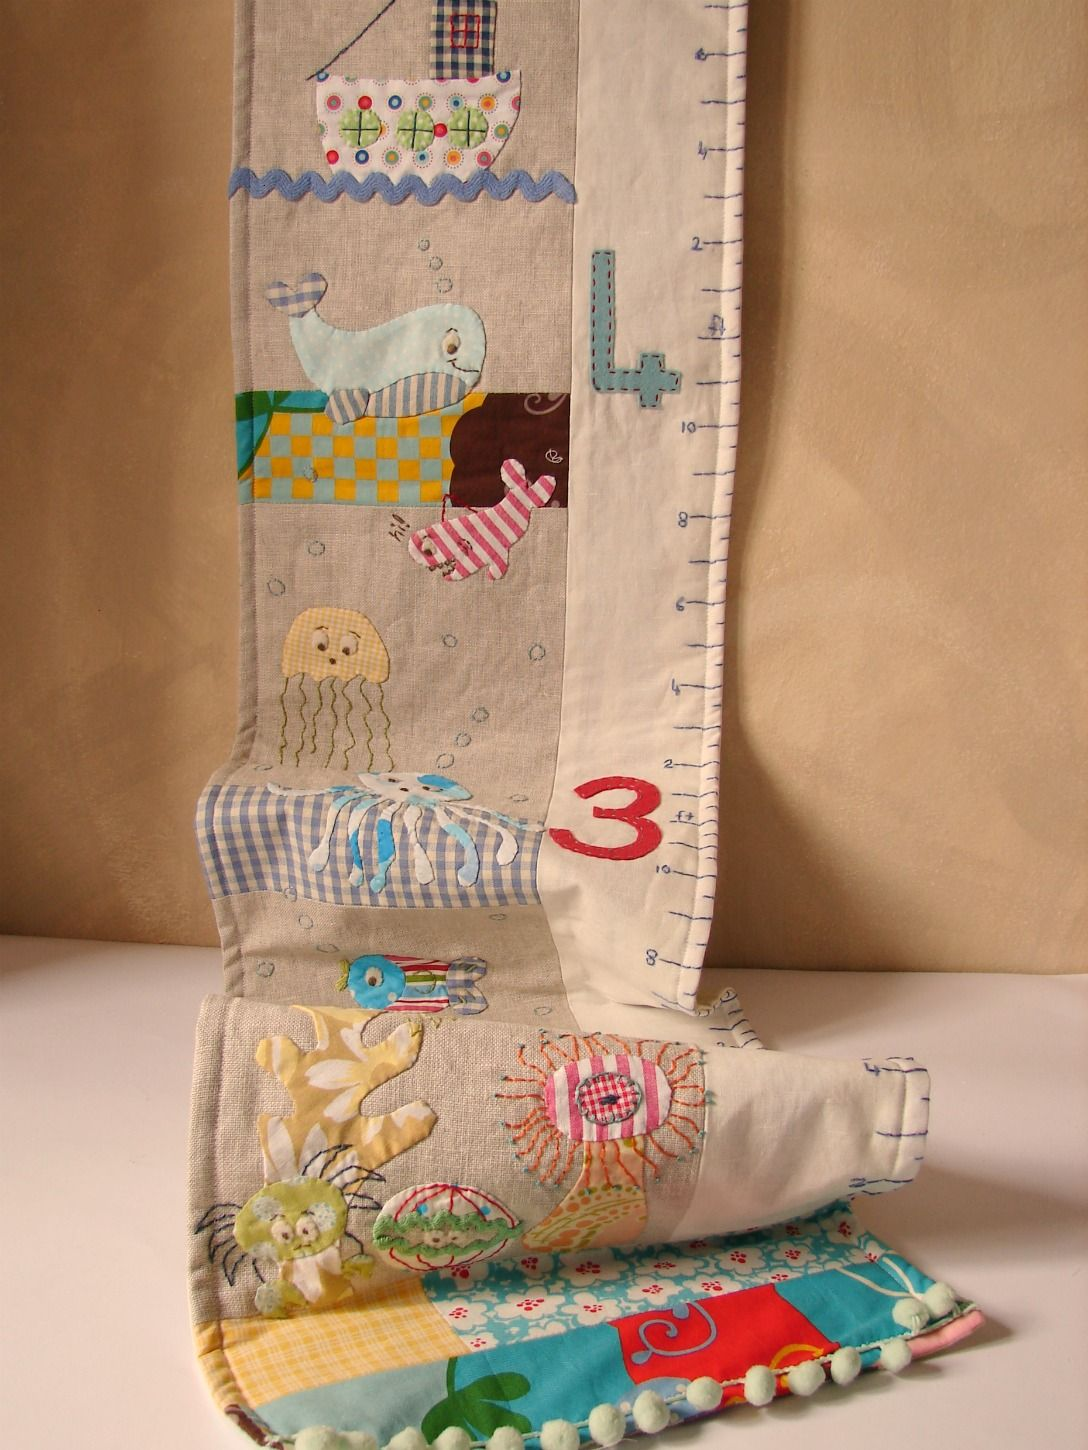 Roxy creations down by the sea growth chart for a sewing roxy creations down by the sea growth chart for a geenschuldenfo Images